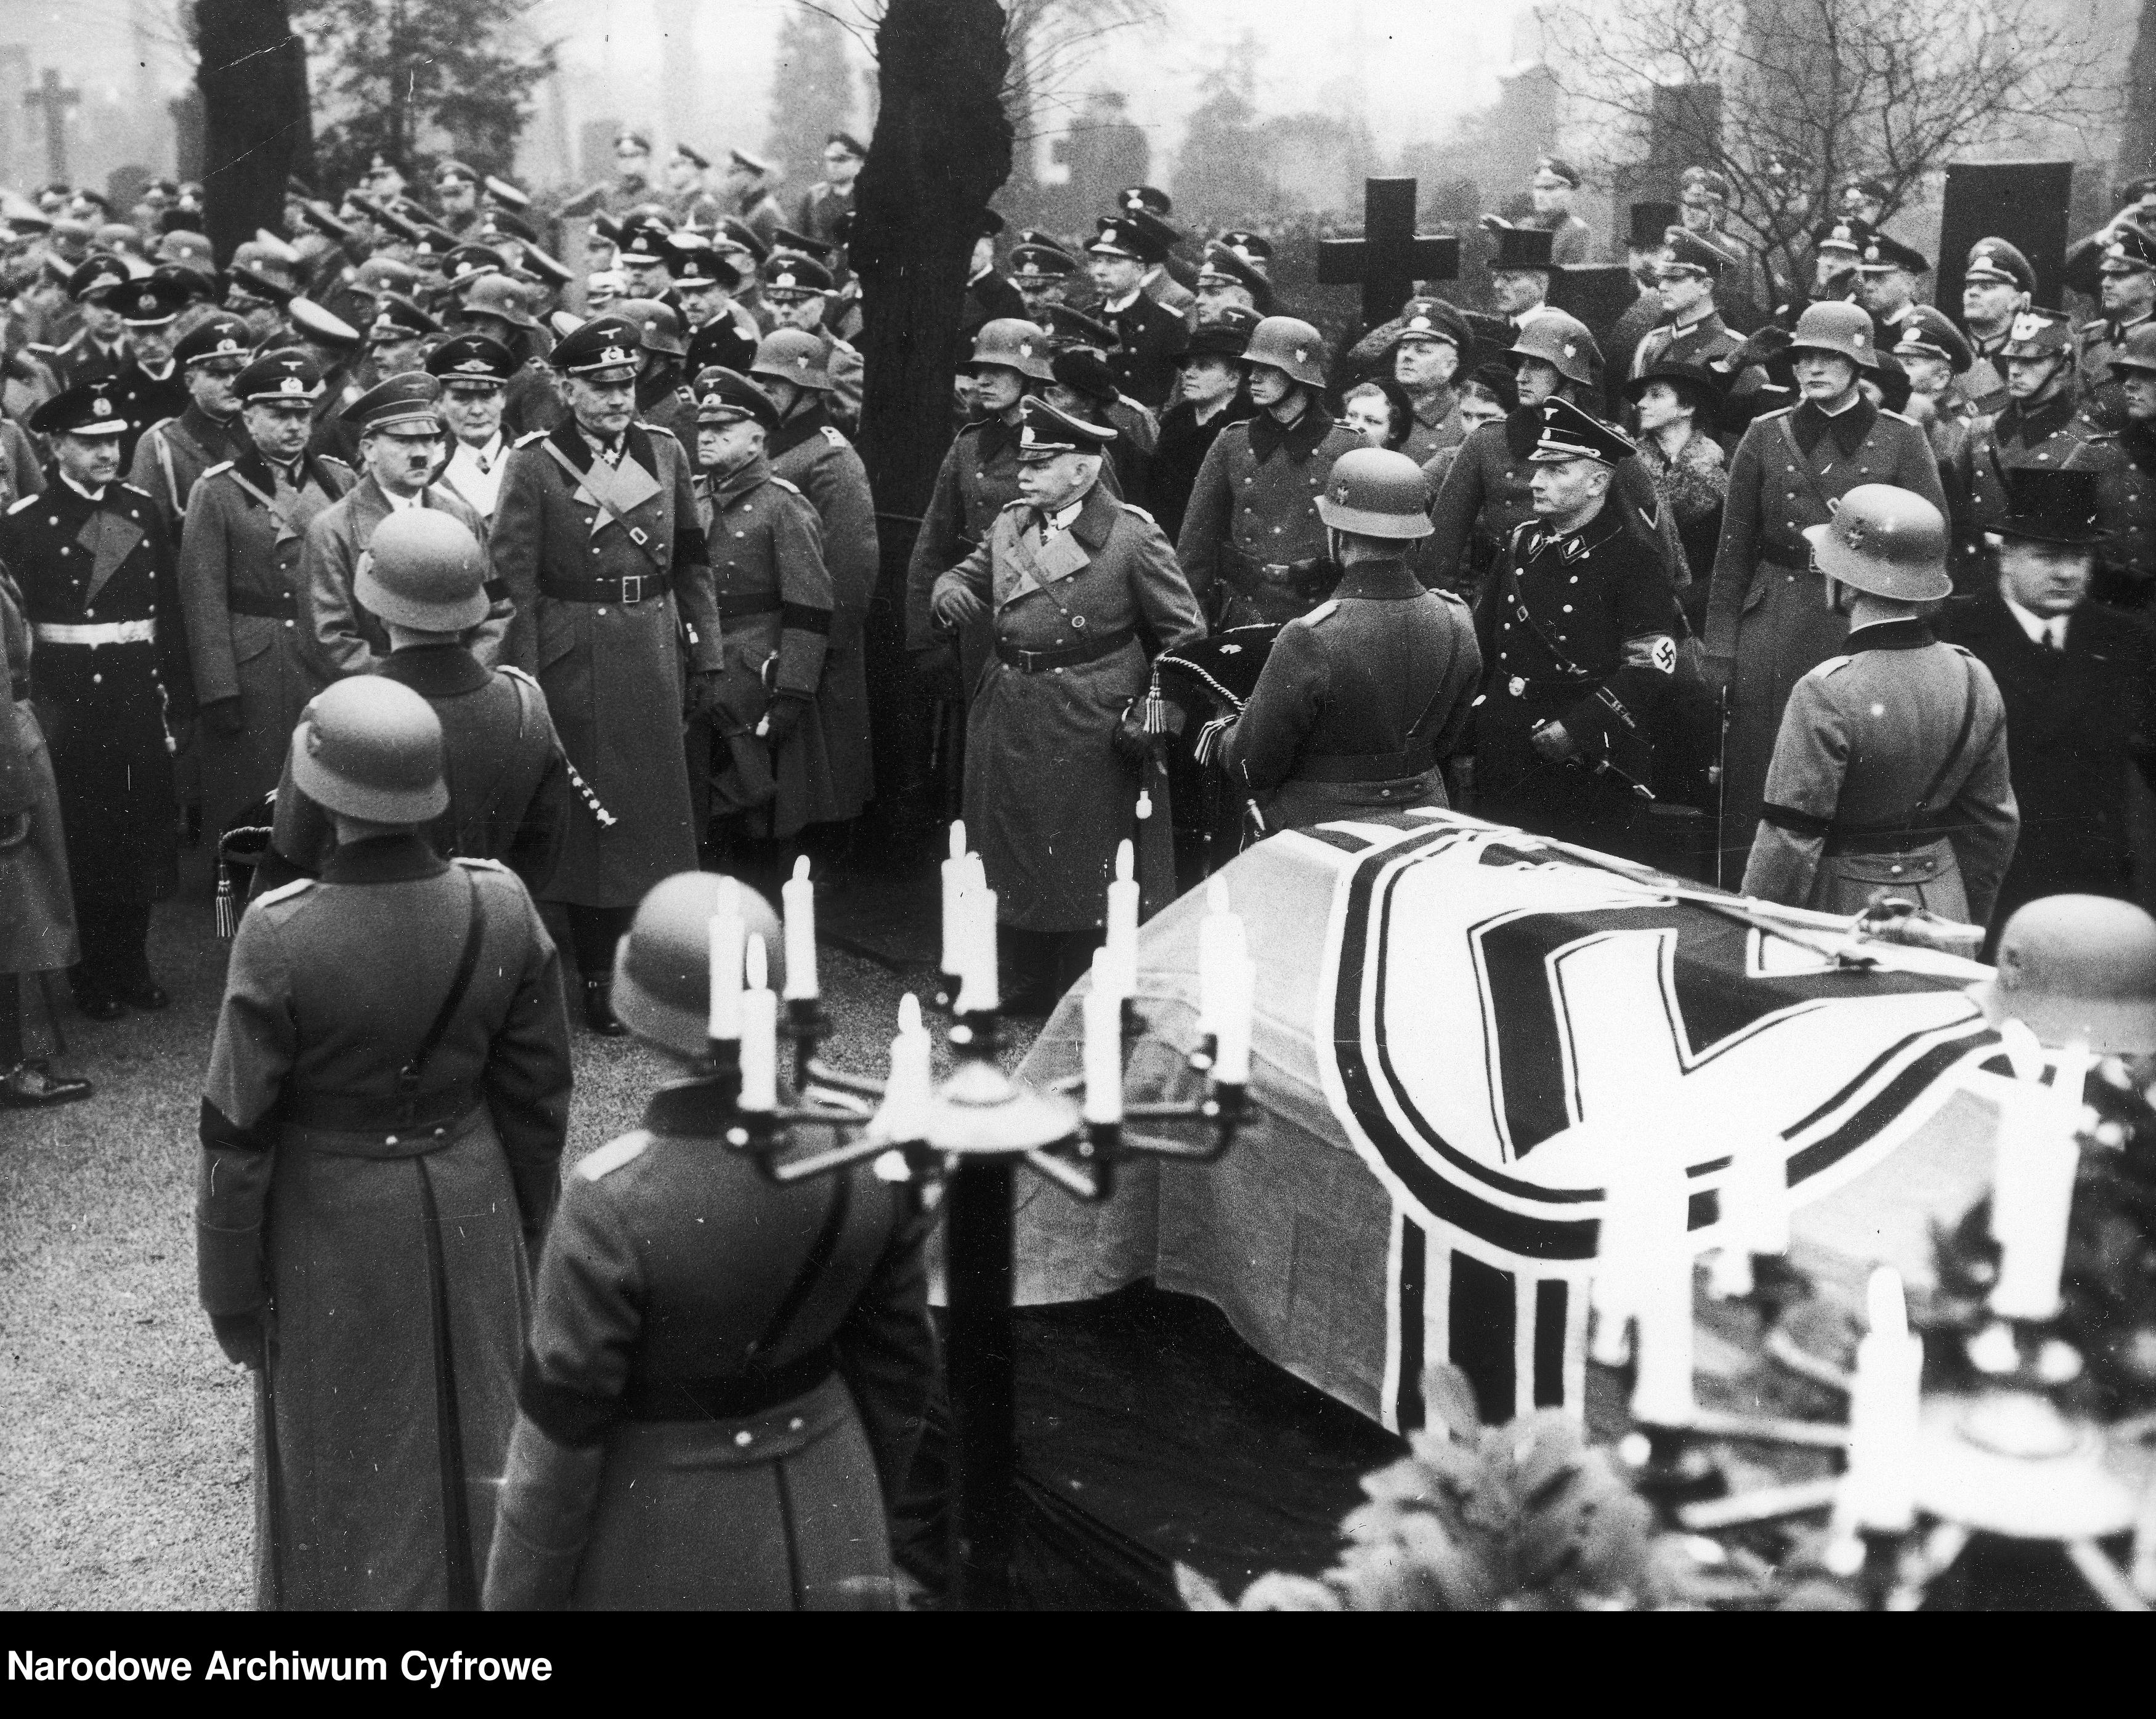 Adolf Hitler and Field Marshal Werner von Blomberg at the funeral of Hans von Seeckt at the Invalidenfriedhof in Berlin